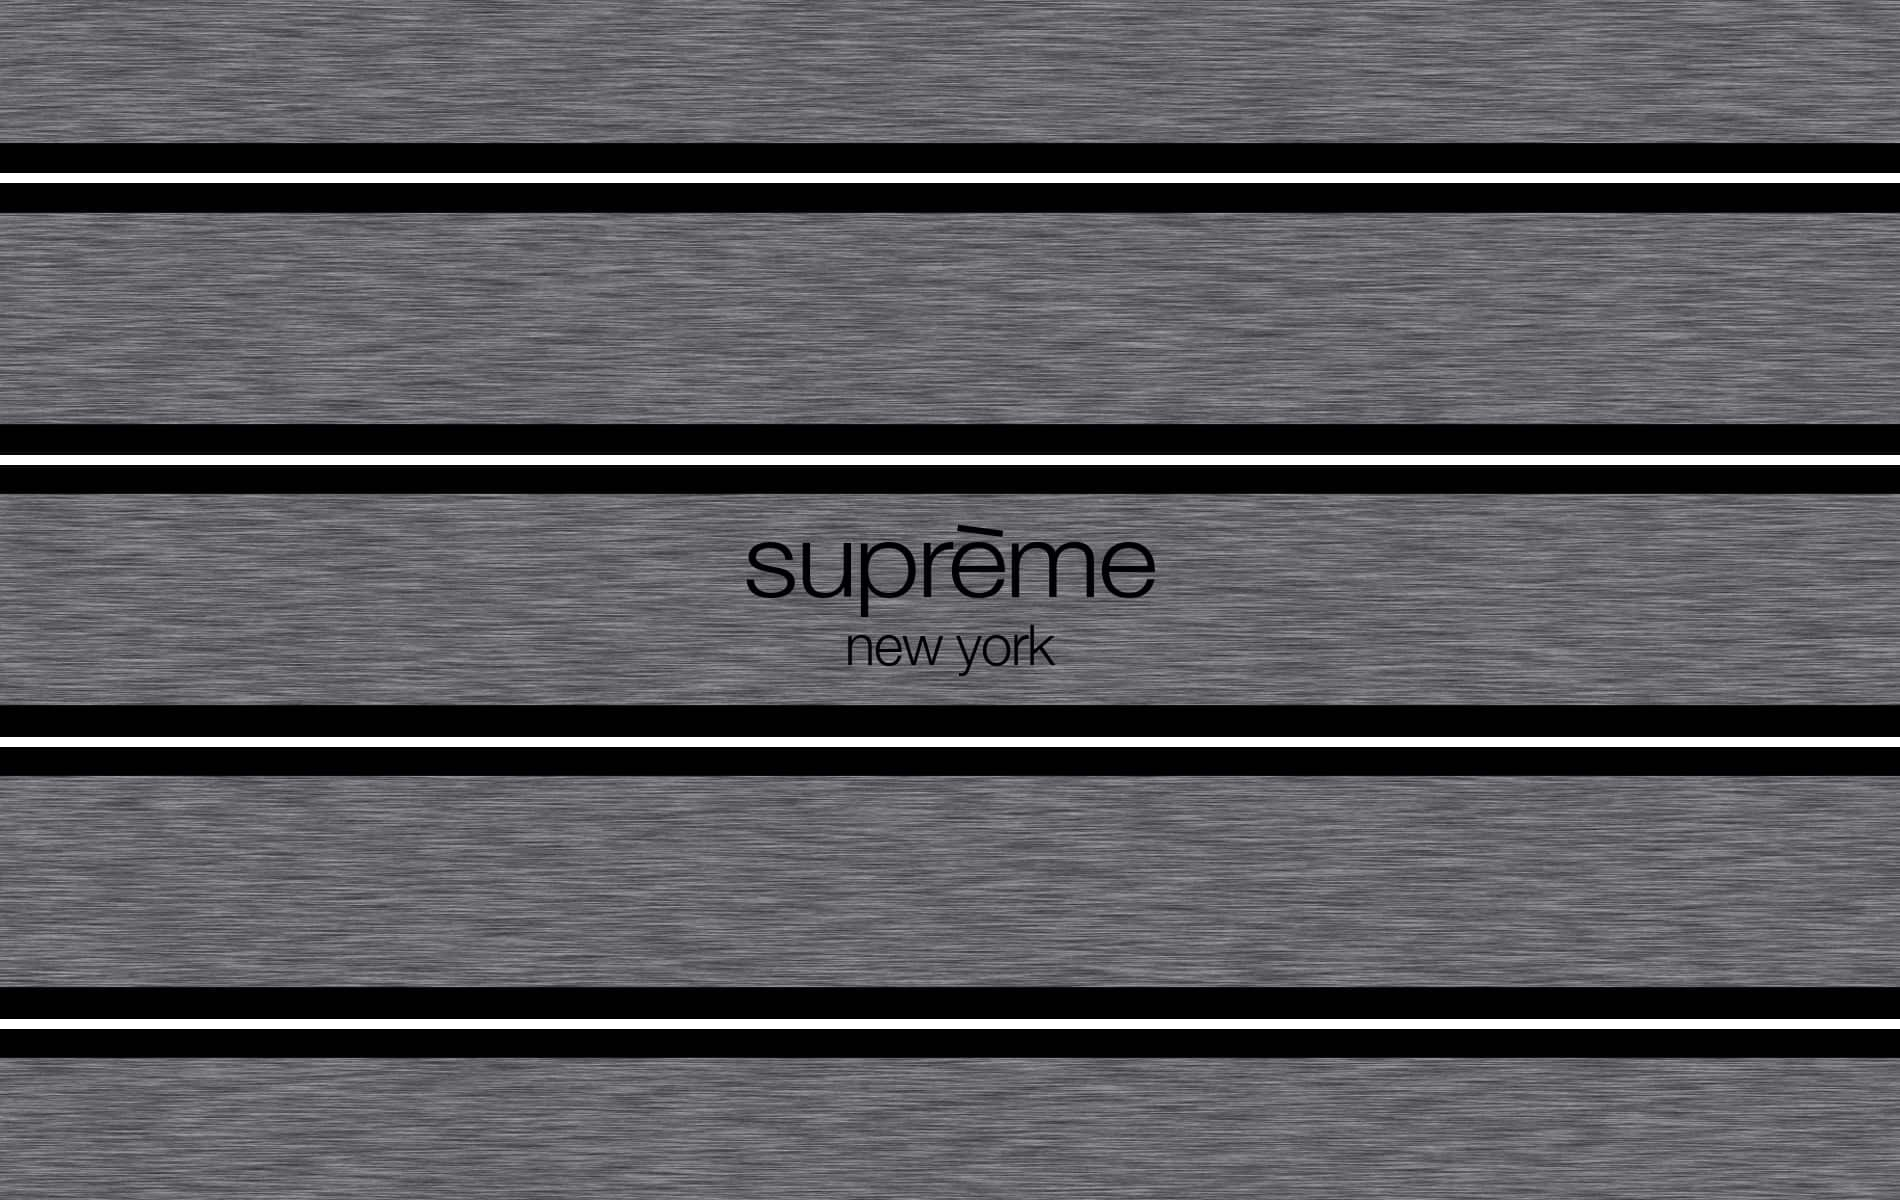 Supreme background Wallpapers